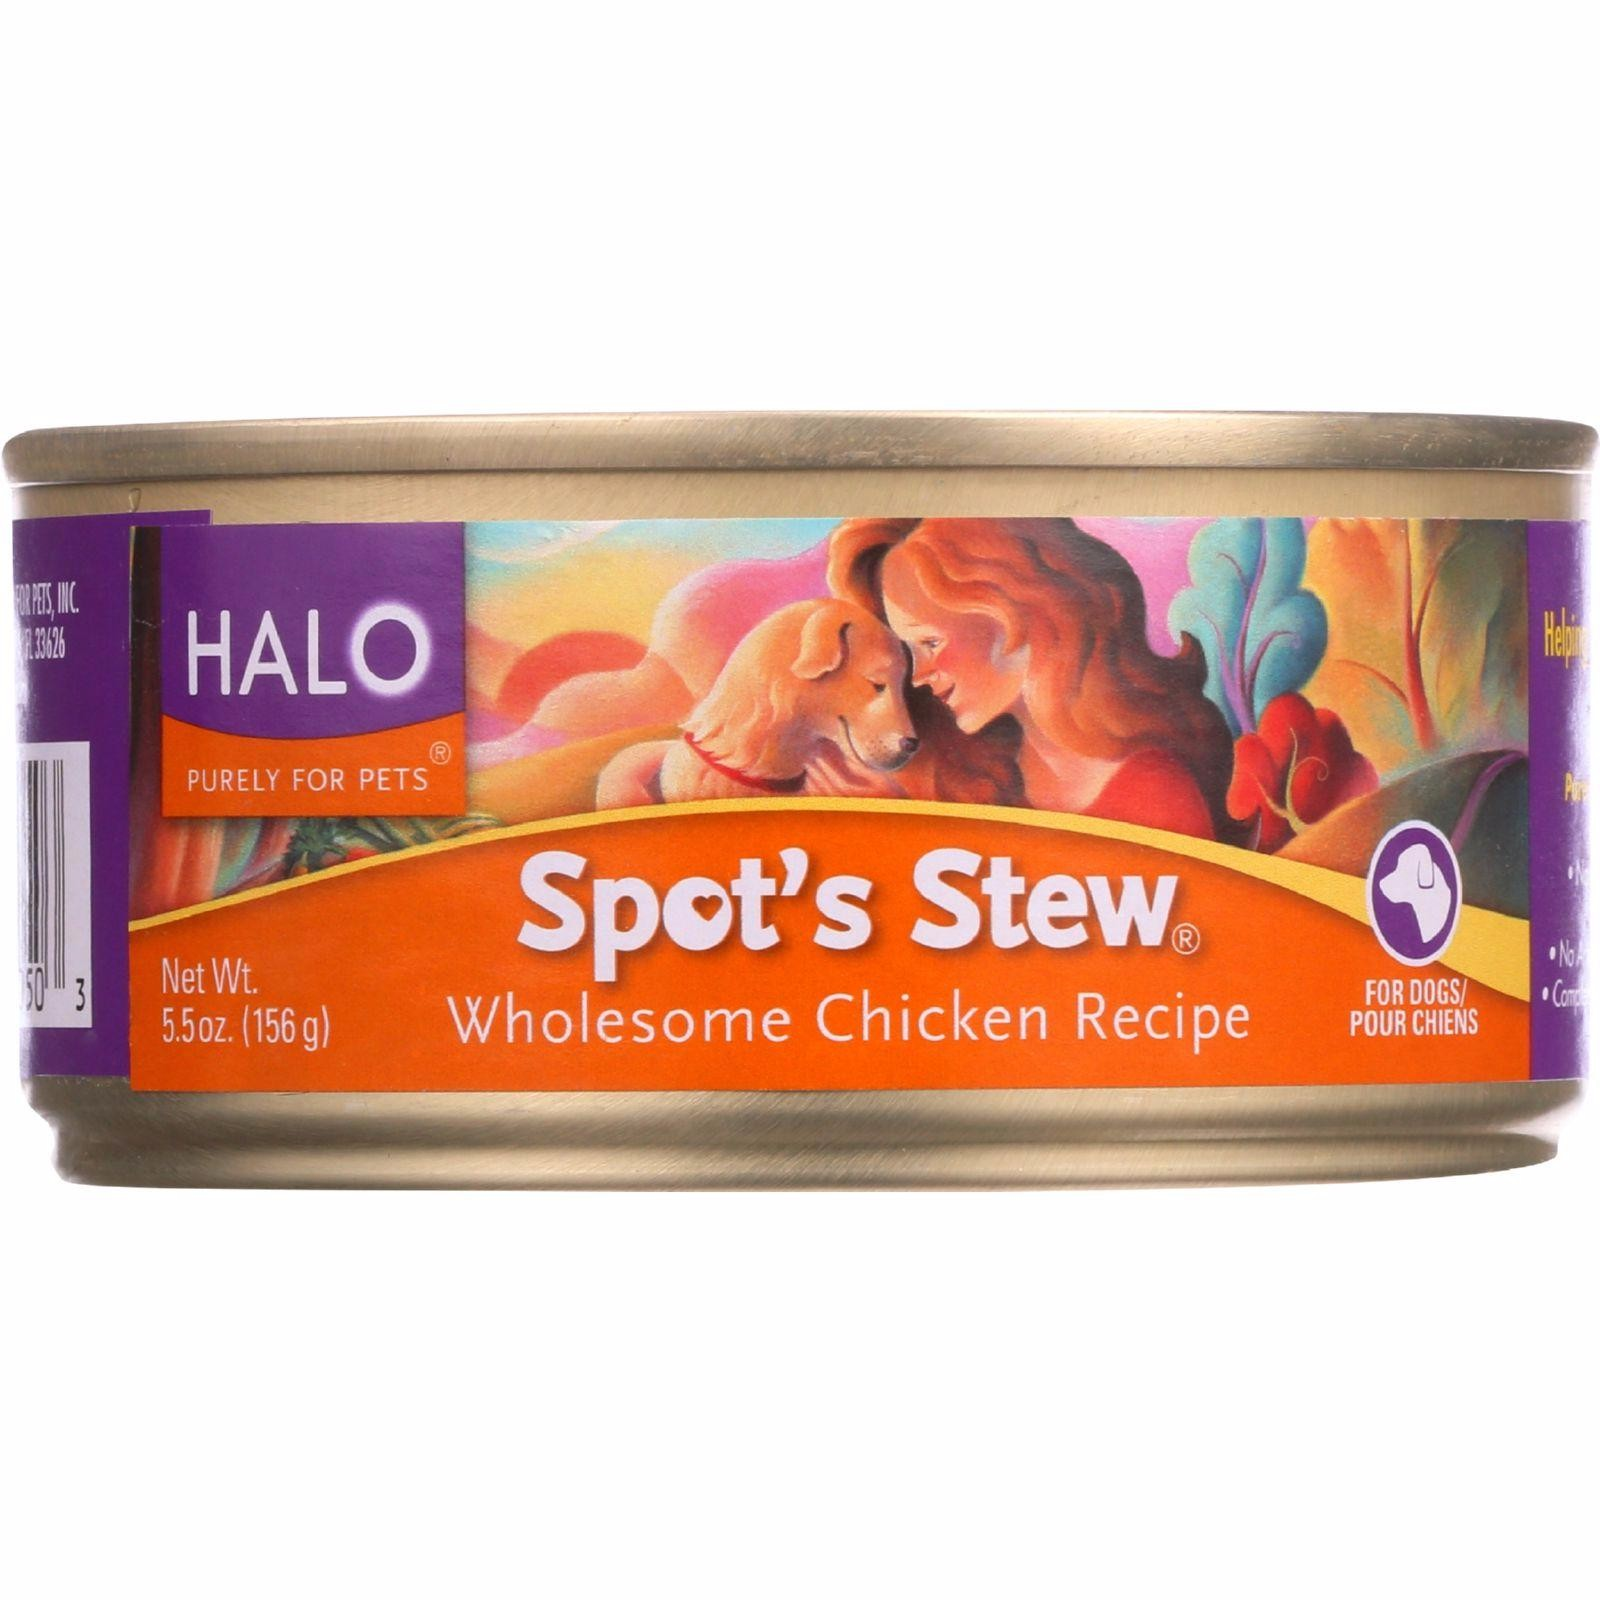 Halo Purely For Pets Dog Food - Spots Stew - Wholesome Chicken - 5.5 Oz - Pack of 12